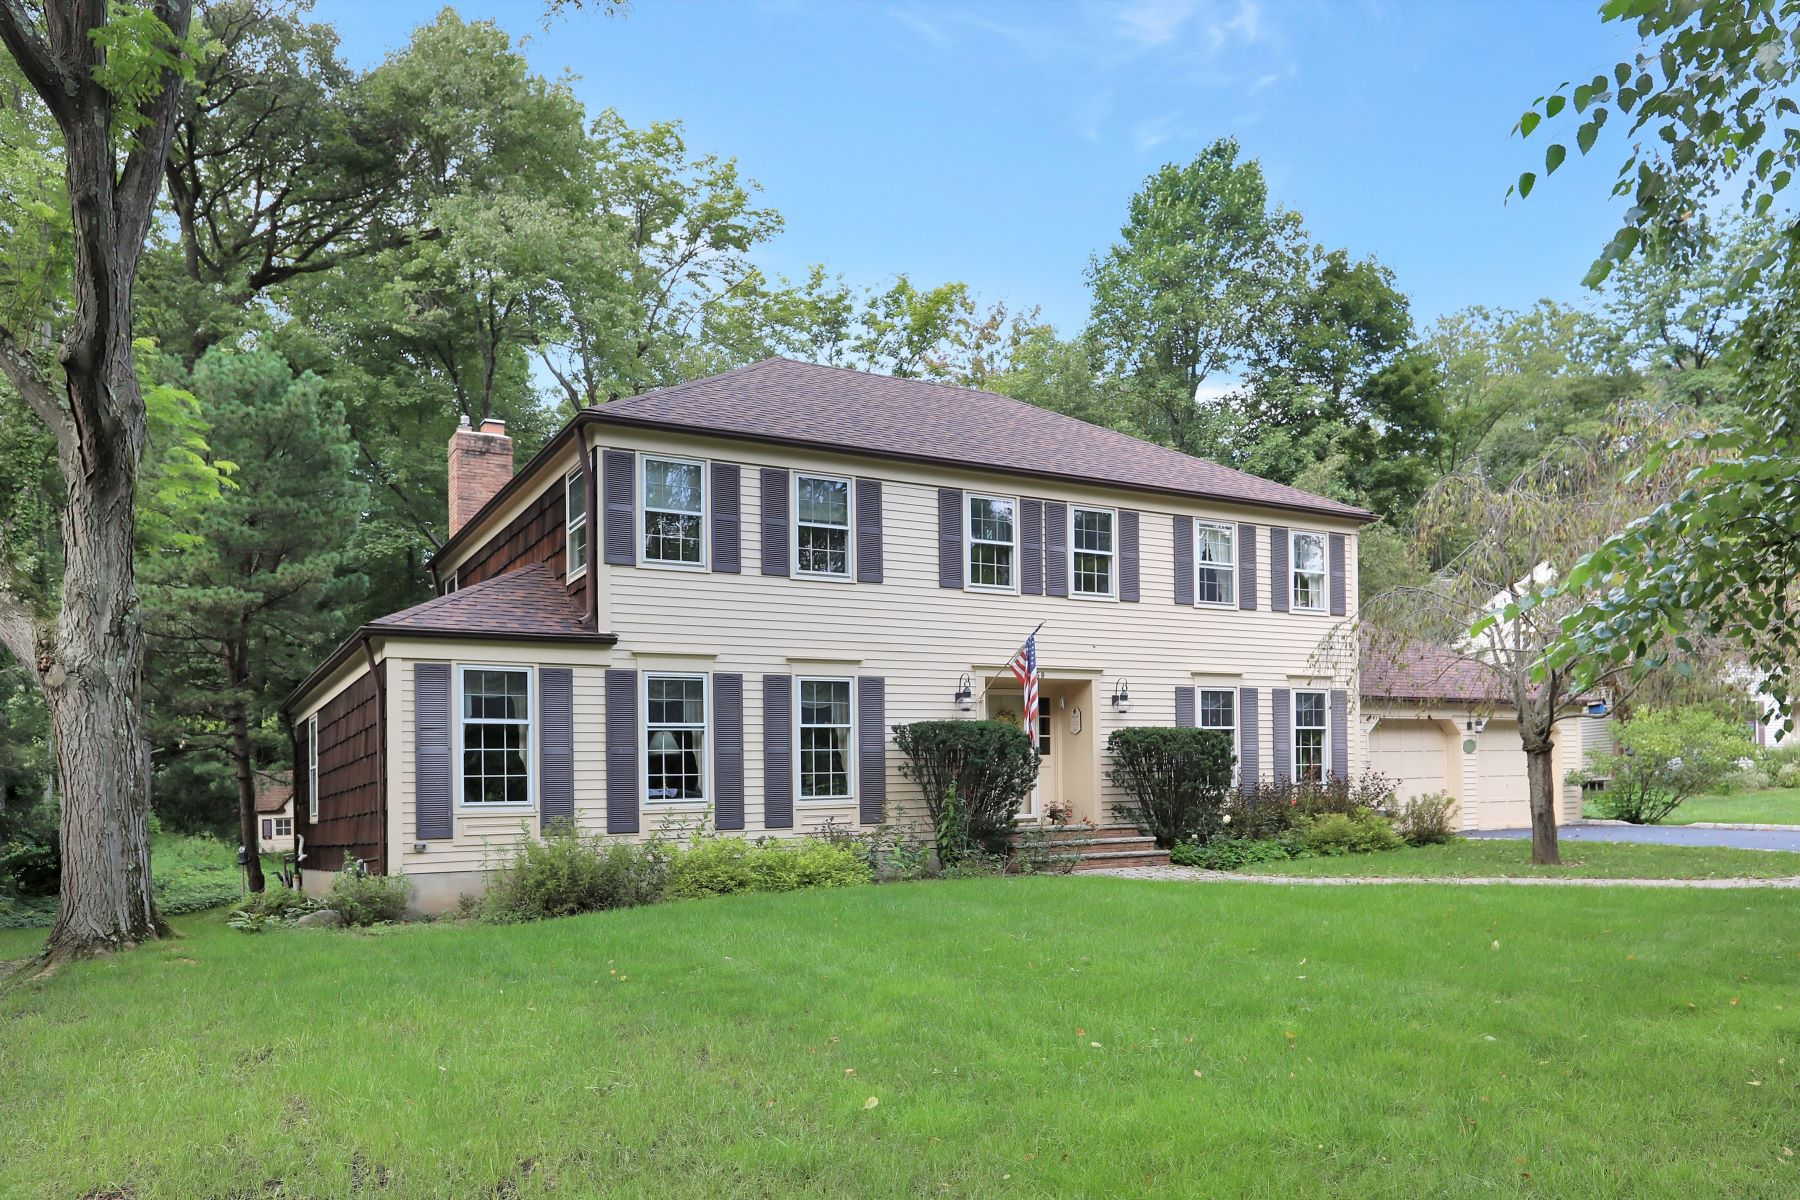 Single Family Homes for Active at Sophisticated Colonial 59 Woodland Avenue Mountain Lakes, New Jersey 07046 United States